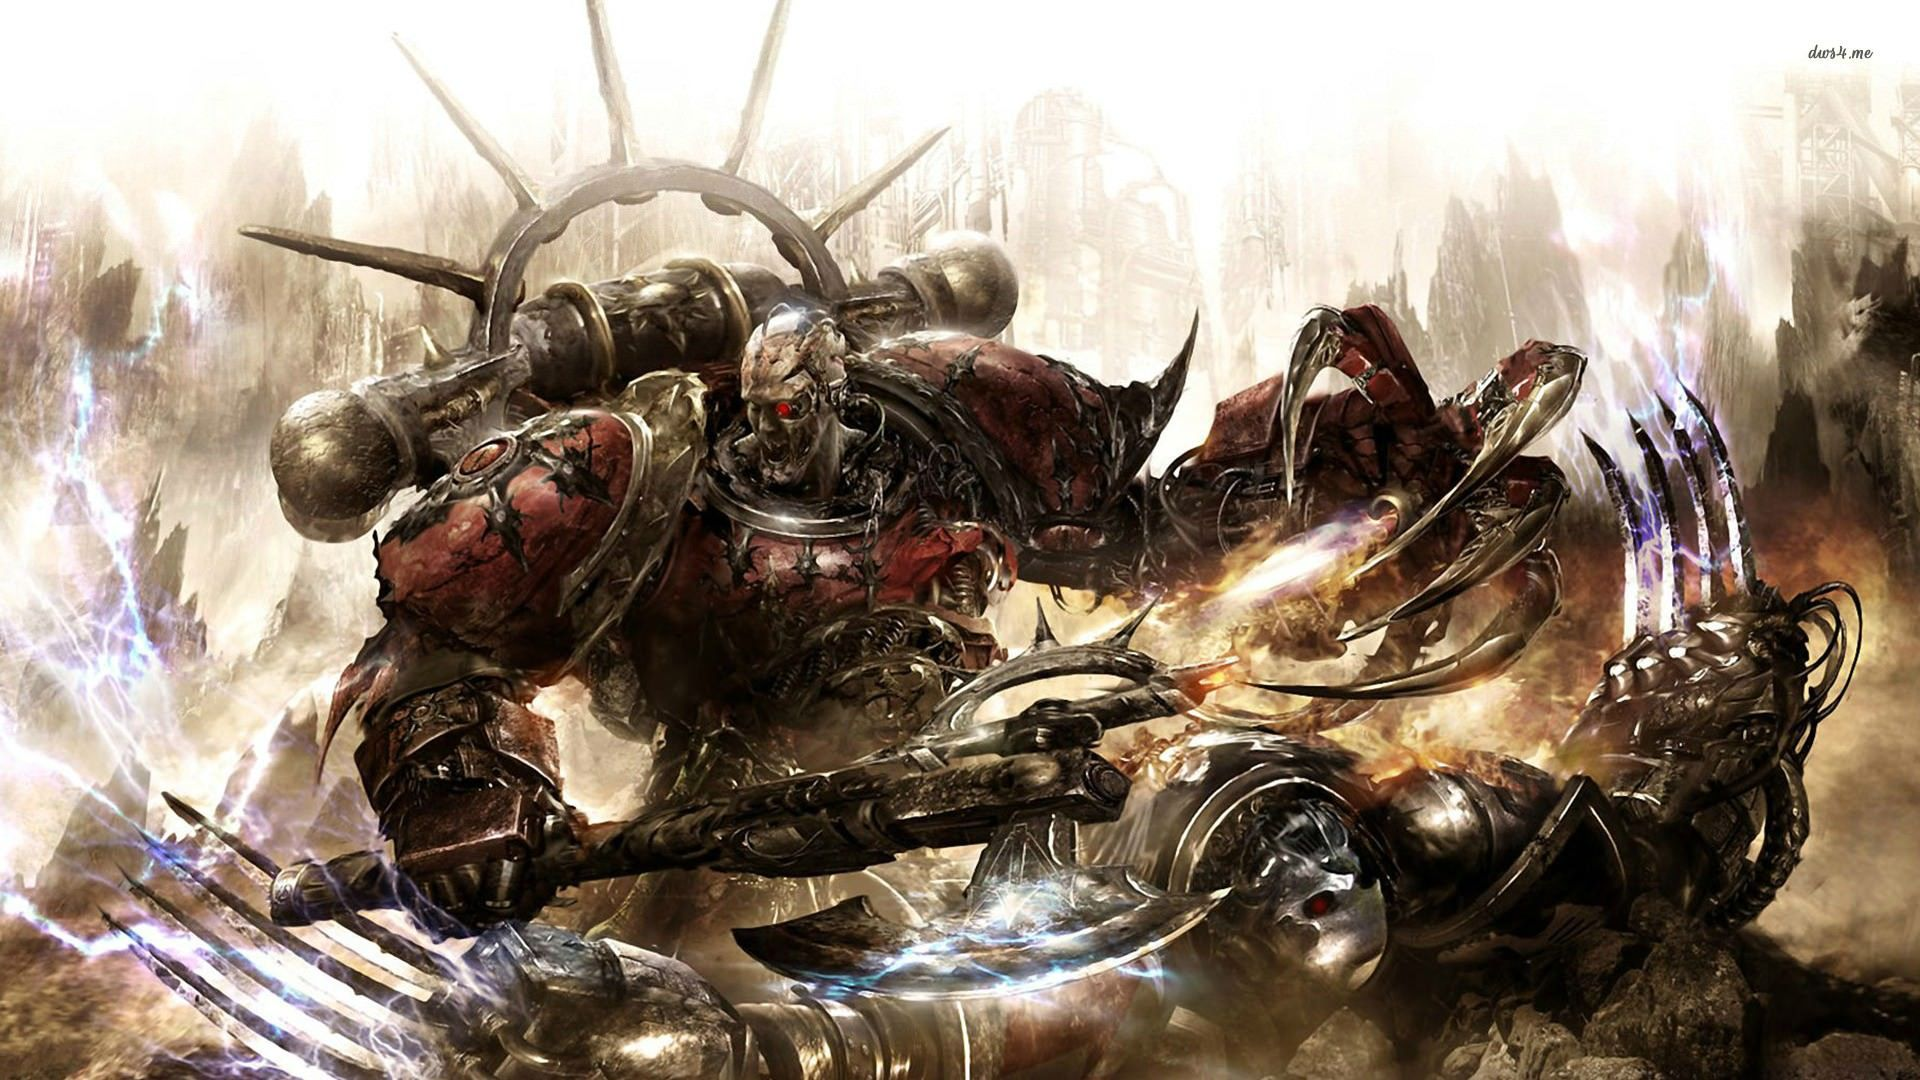 High Definition Mobile Phone And Desktop Wallpapers Artistic Wallpaper Warhammer 40k Artwork Warhammer Art